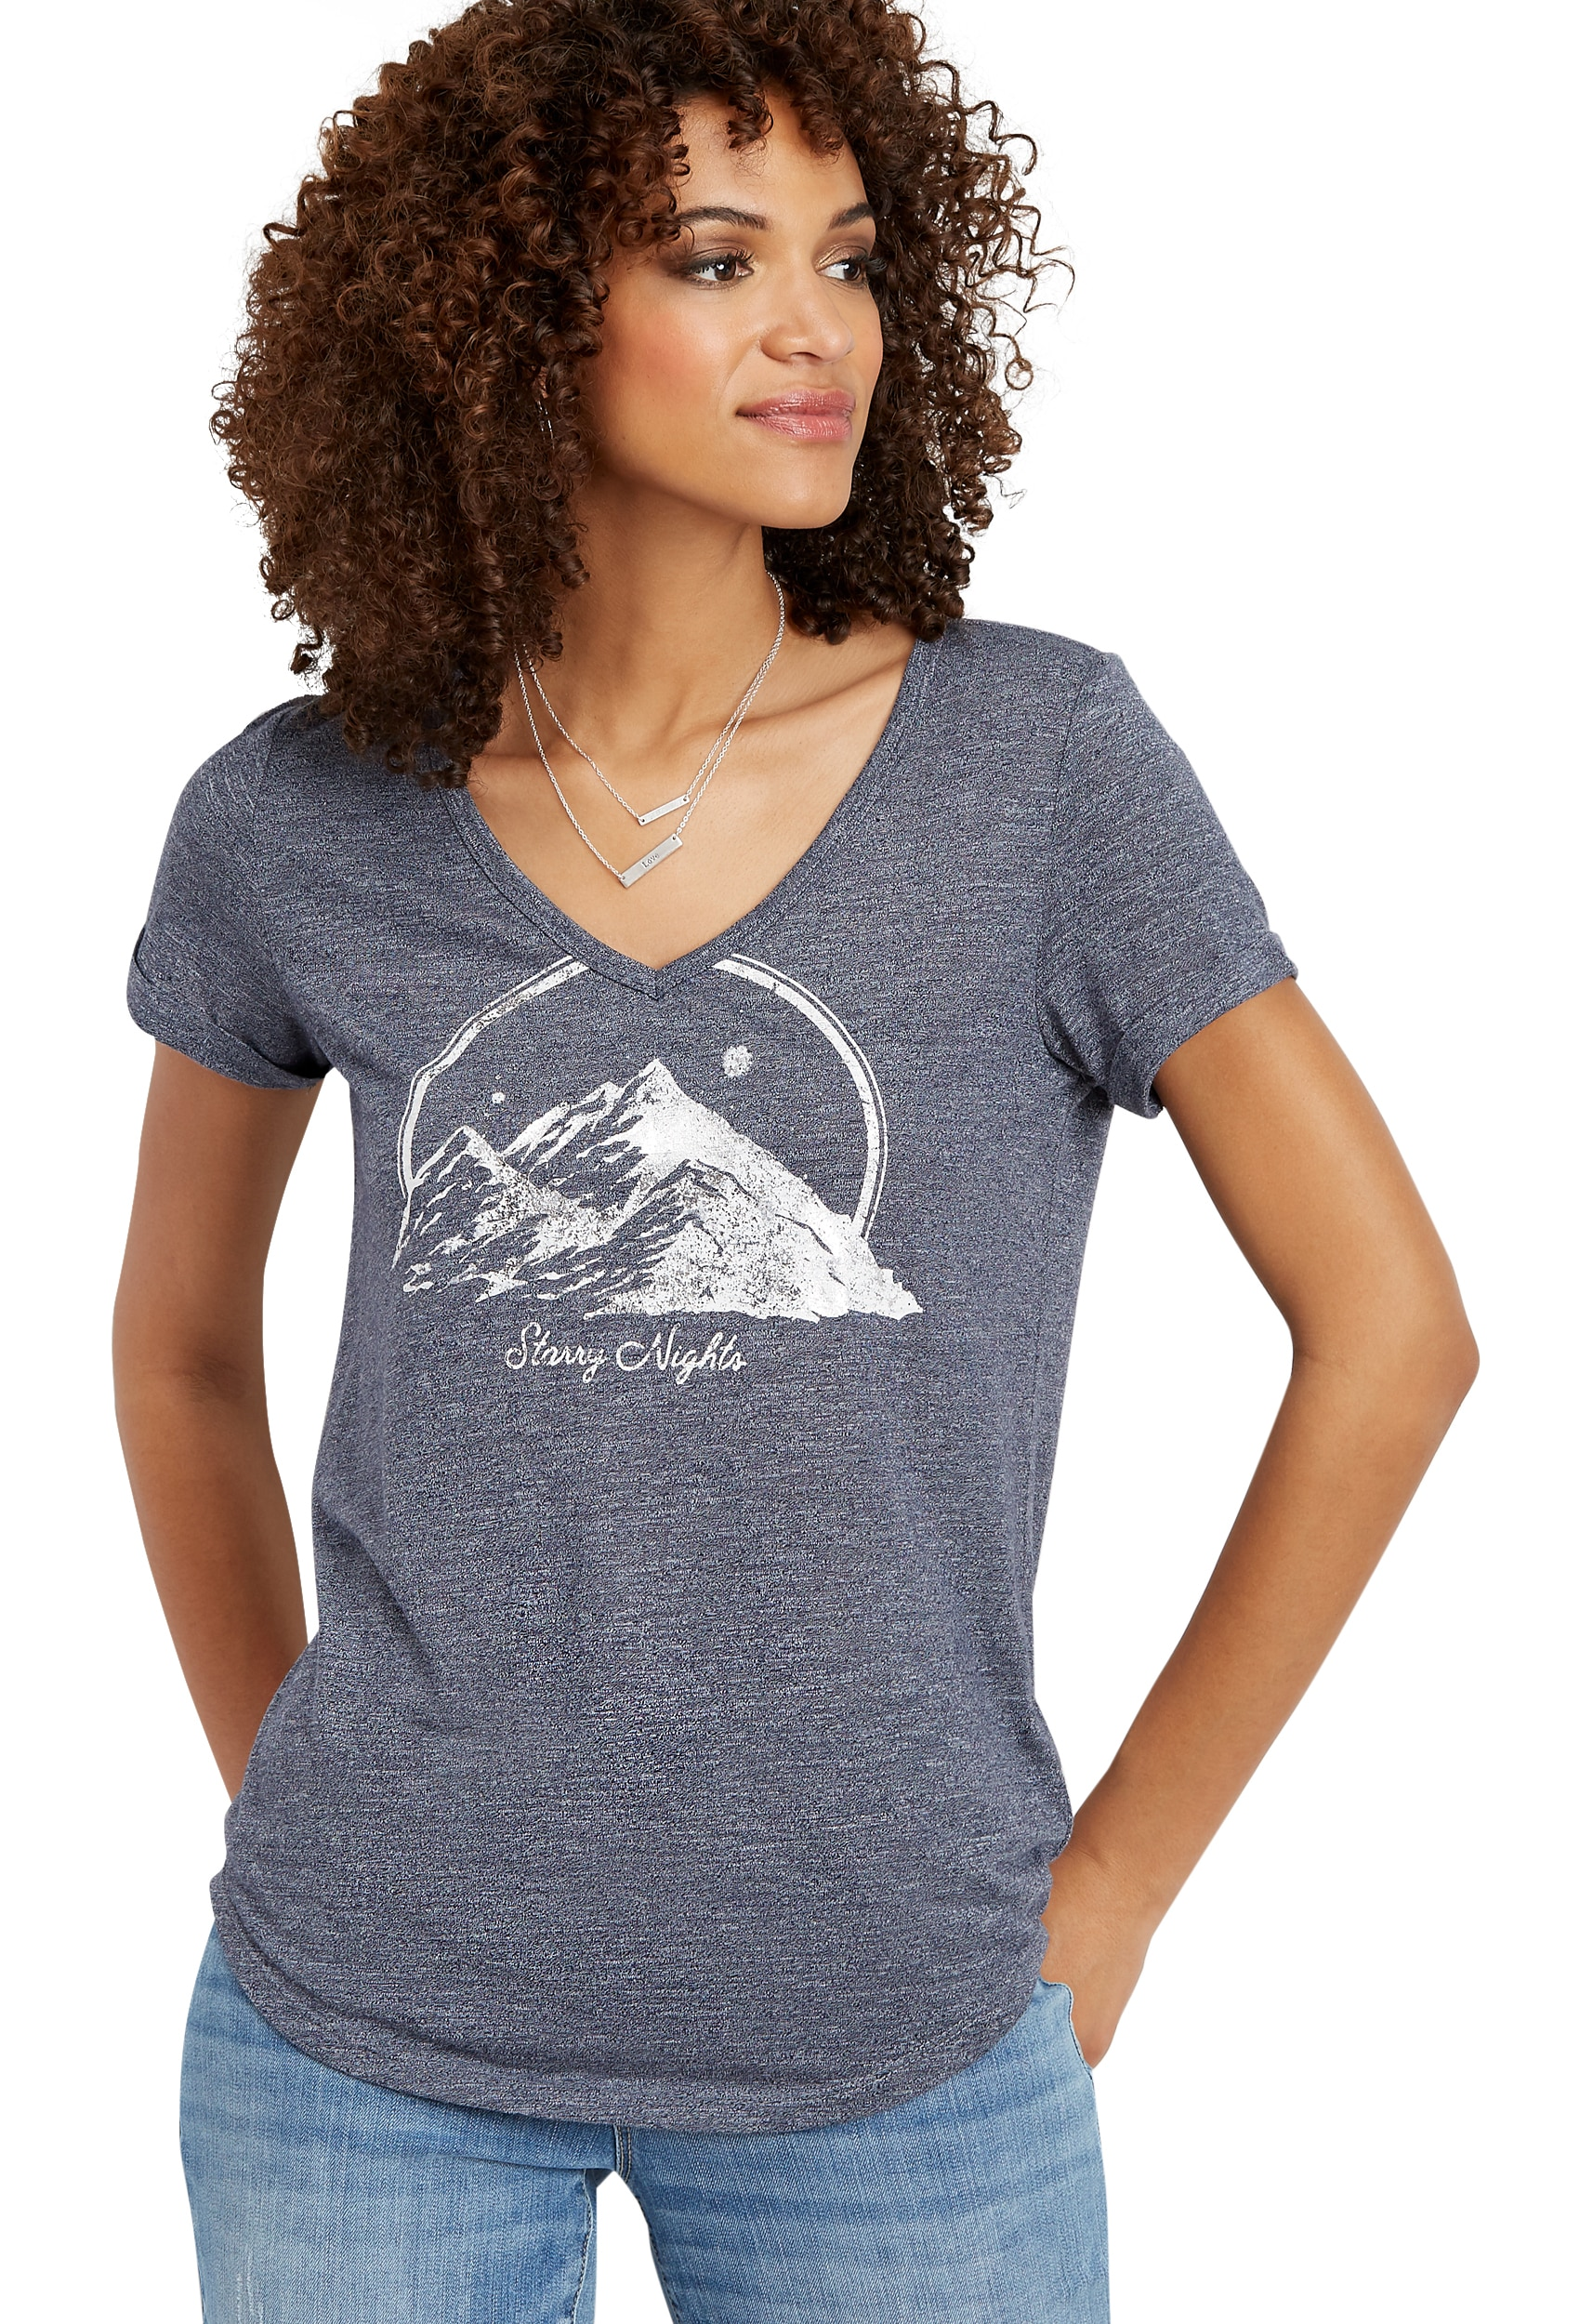 Starry Nights Graphic Tee